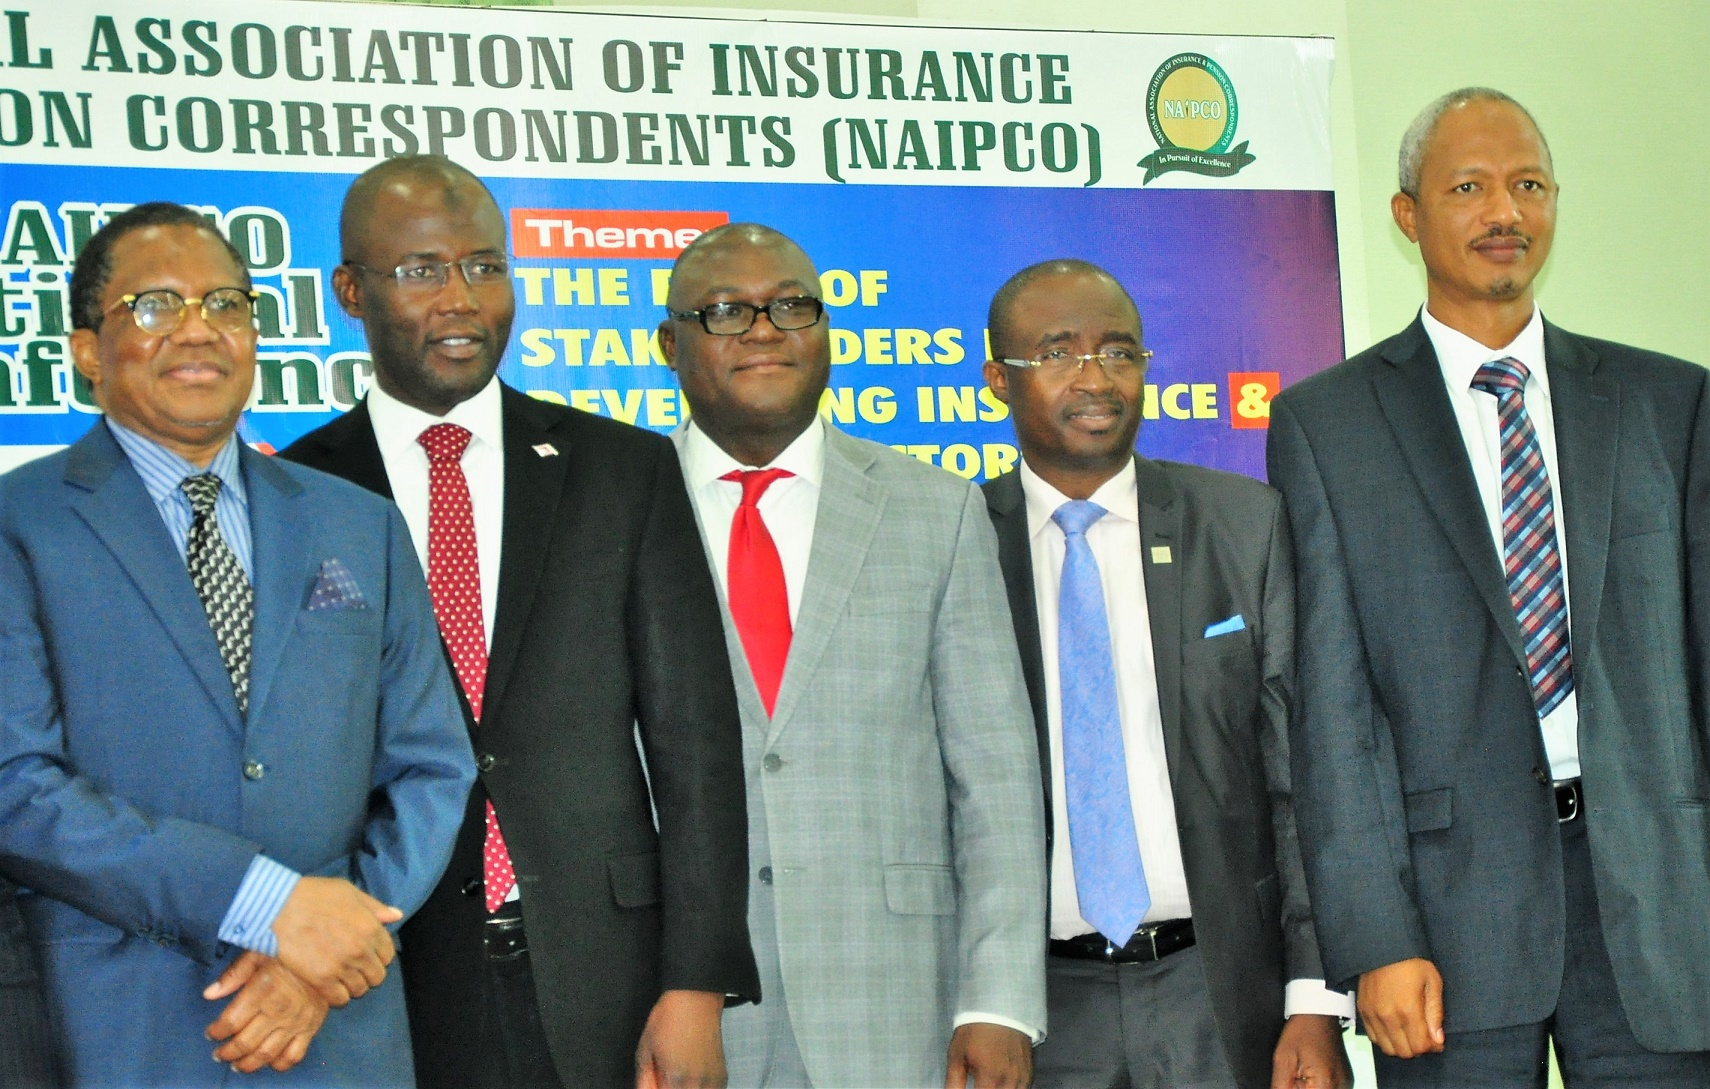 L-R: Alhaji Bala Zakariya'u, past president, Chartered Insurance Institute of Nigeria and Chairman of occasion; Mr Moruf Apampa, Managing Director/CEO, SUNU Assurance Plc; Mr Adebayo Adeleke, Managing Director, Lancelot Ventures Ltd; Mr. Supo Sogolola, Executive Director, Law Union & Rock Insurance, and Dr. Farouk Aminu, Head, Research and Strategy Management Department, Pencom, during the  3rd Annual National Conference of the National Association of Insurance and Pension Correspondents (NAIPCO) on The Role of Stakeholders in Developing Insurance and Pension Sectors held in Lagos on Thursday. August 09, 2018.